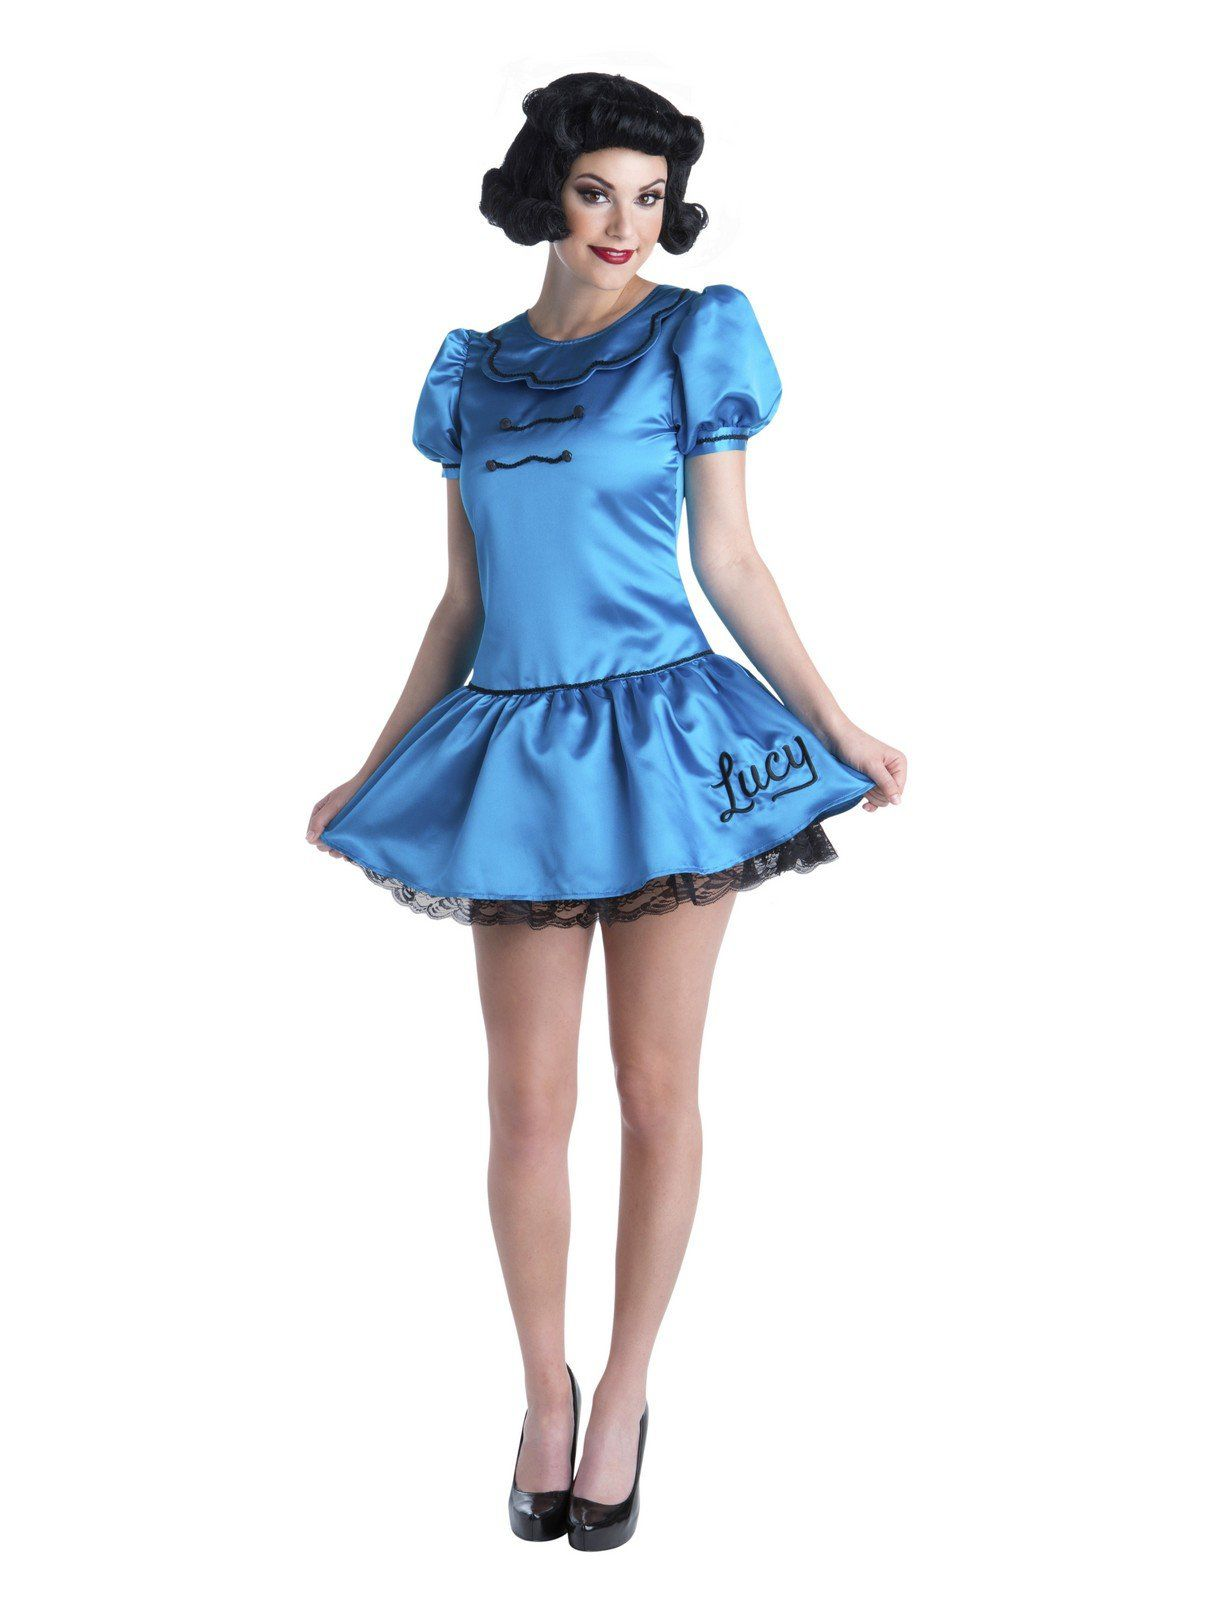 Lucy Adult Costume - Deluxe  sc 1 st  Wholesale Halloween Costumes & Lucy Adult Costume - Deluxe - Womens Costumes for 2018 | Wholesale ...